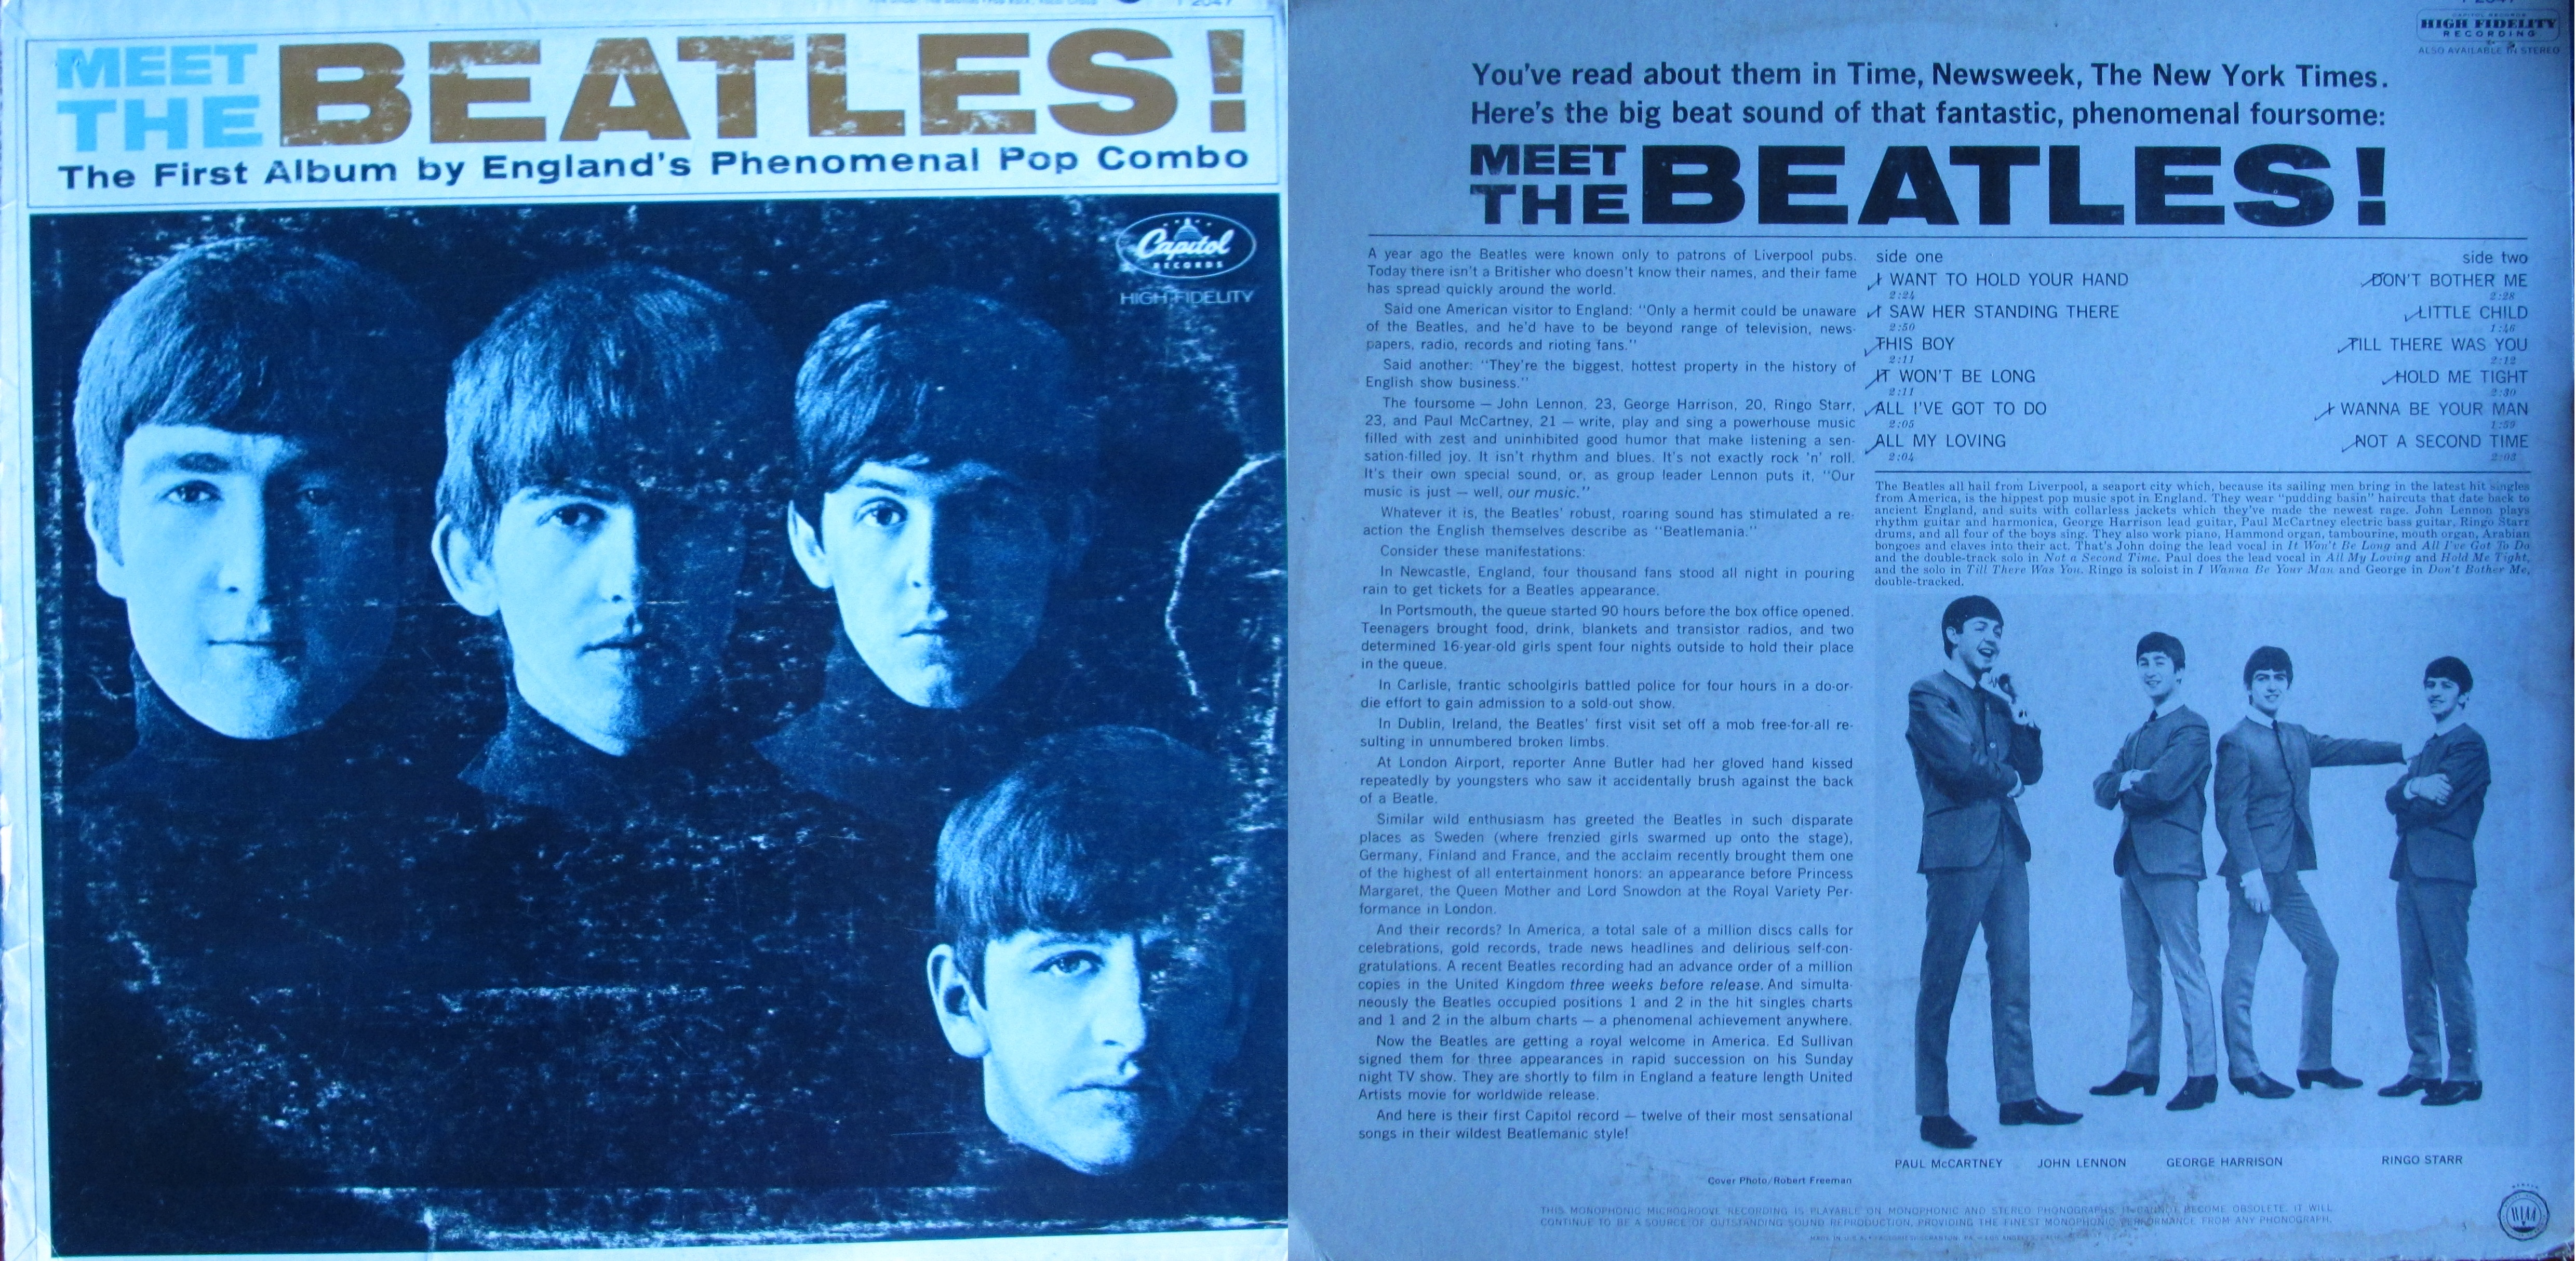 meet the beatles first album by england phenomenal pop combo value